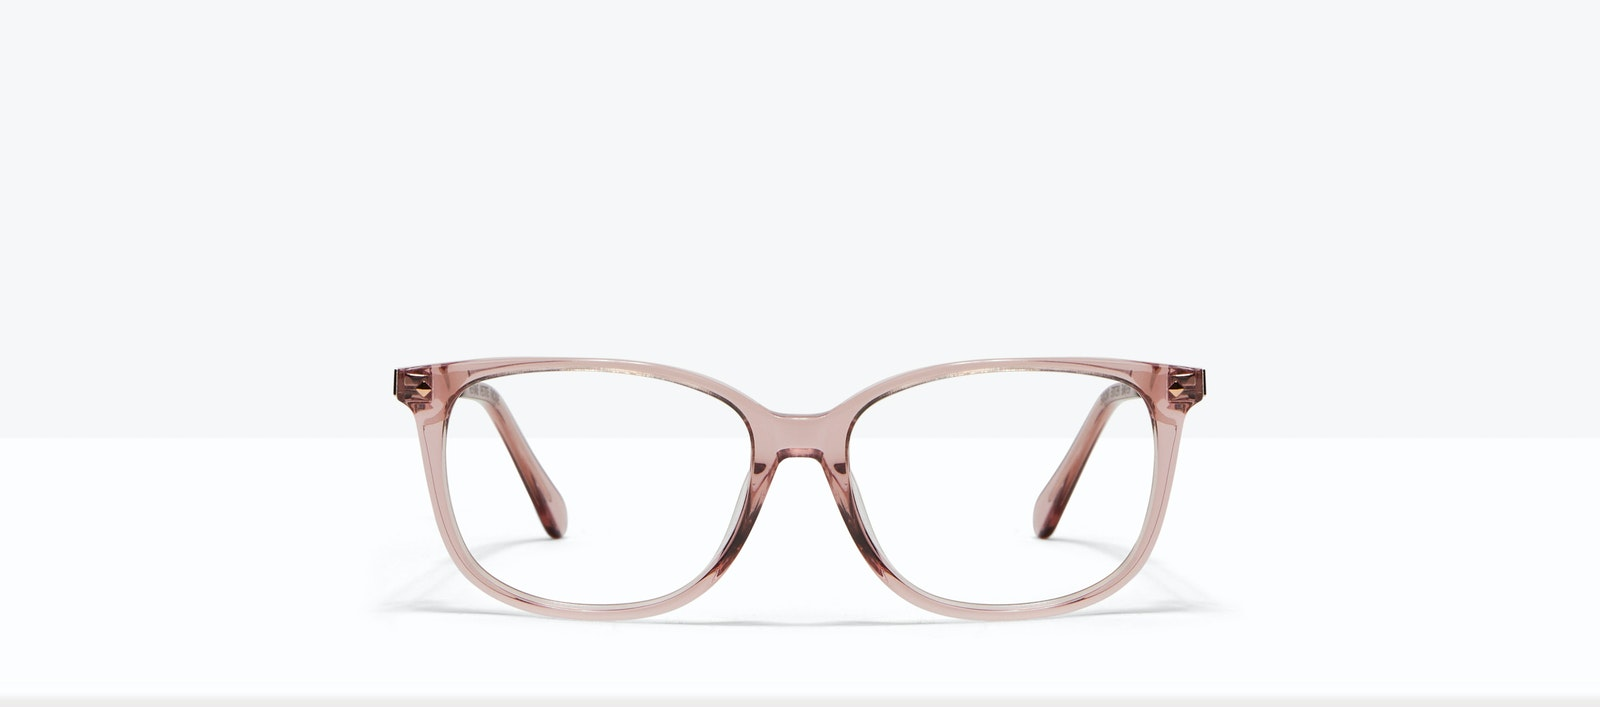 Affordable Fashion Glasses Square Eyeglasses Women Refine Petite Rose Front